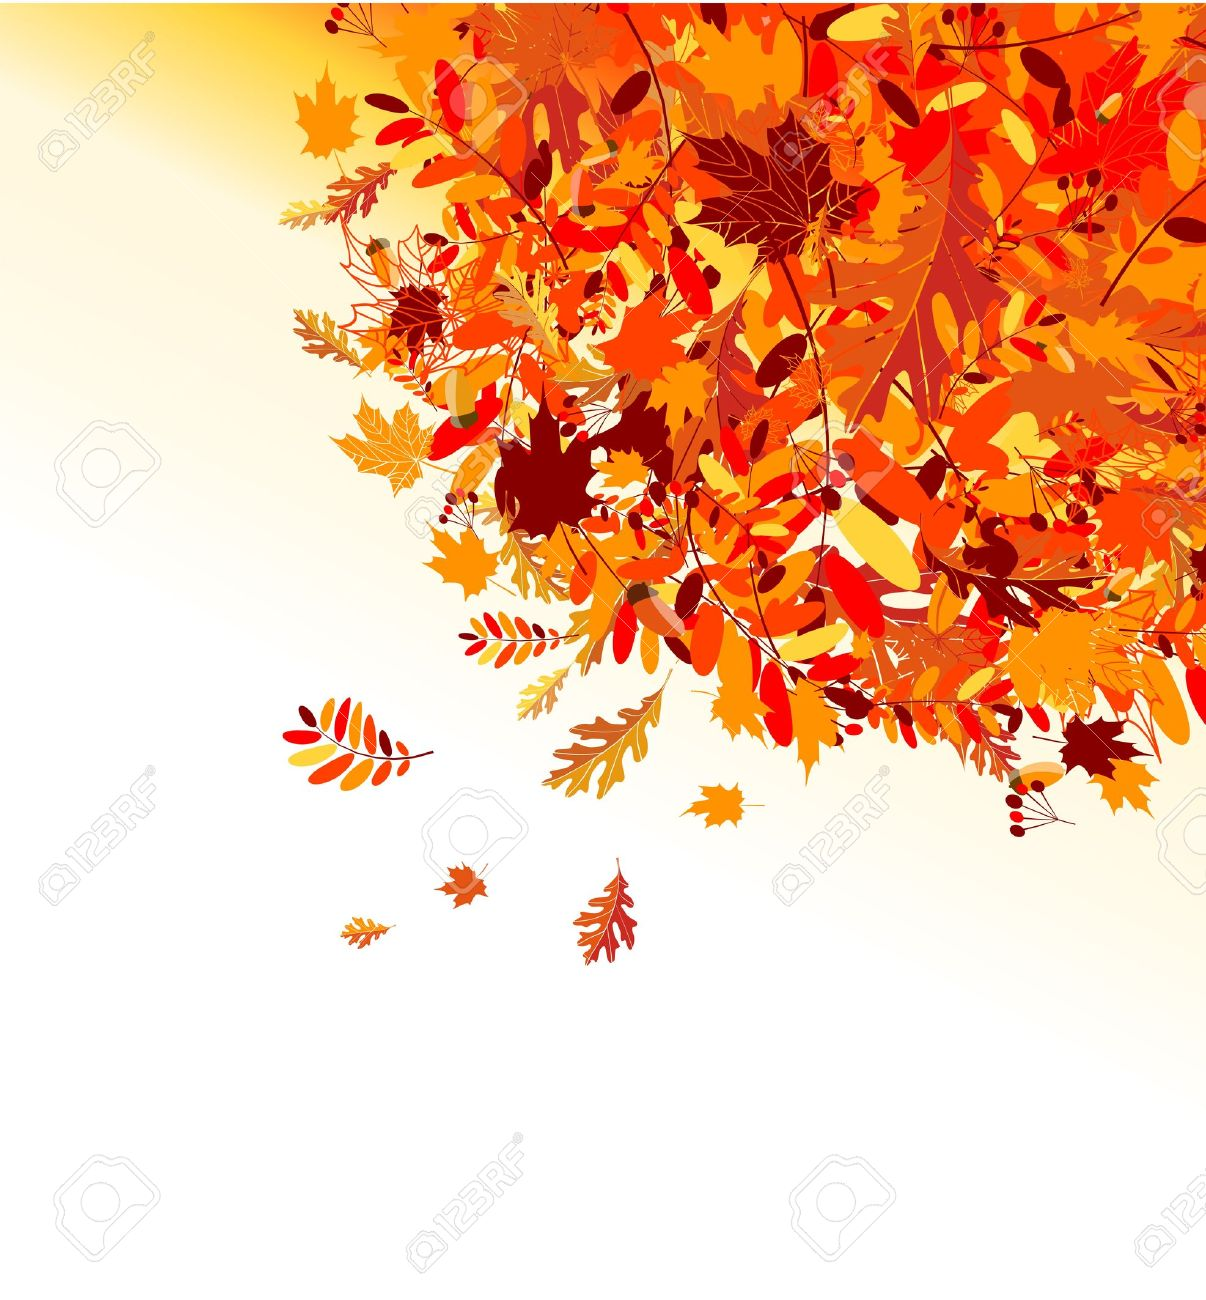 Autumn leaves background for your design Stock Vector - 7770182